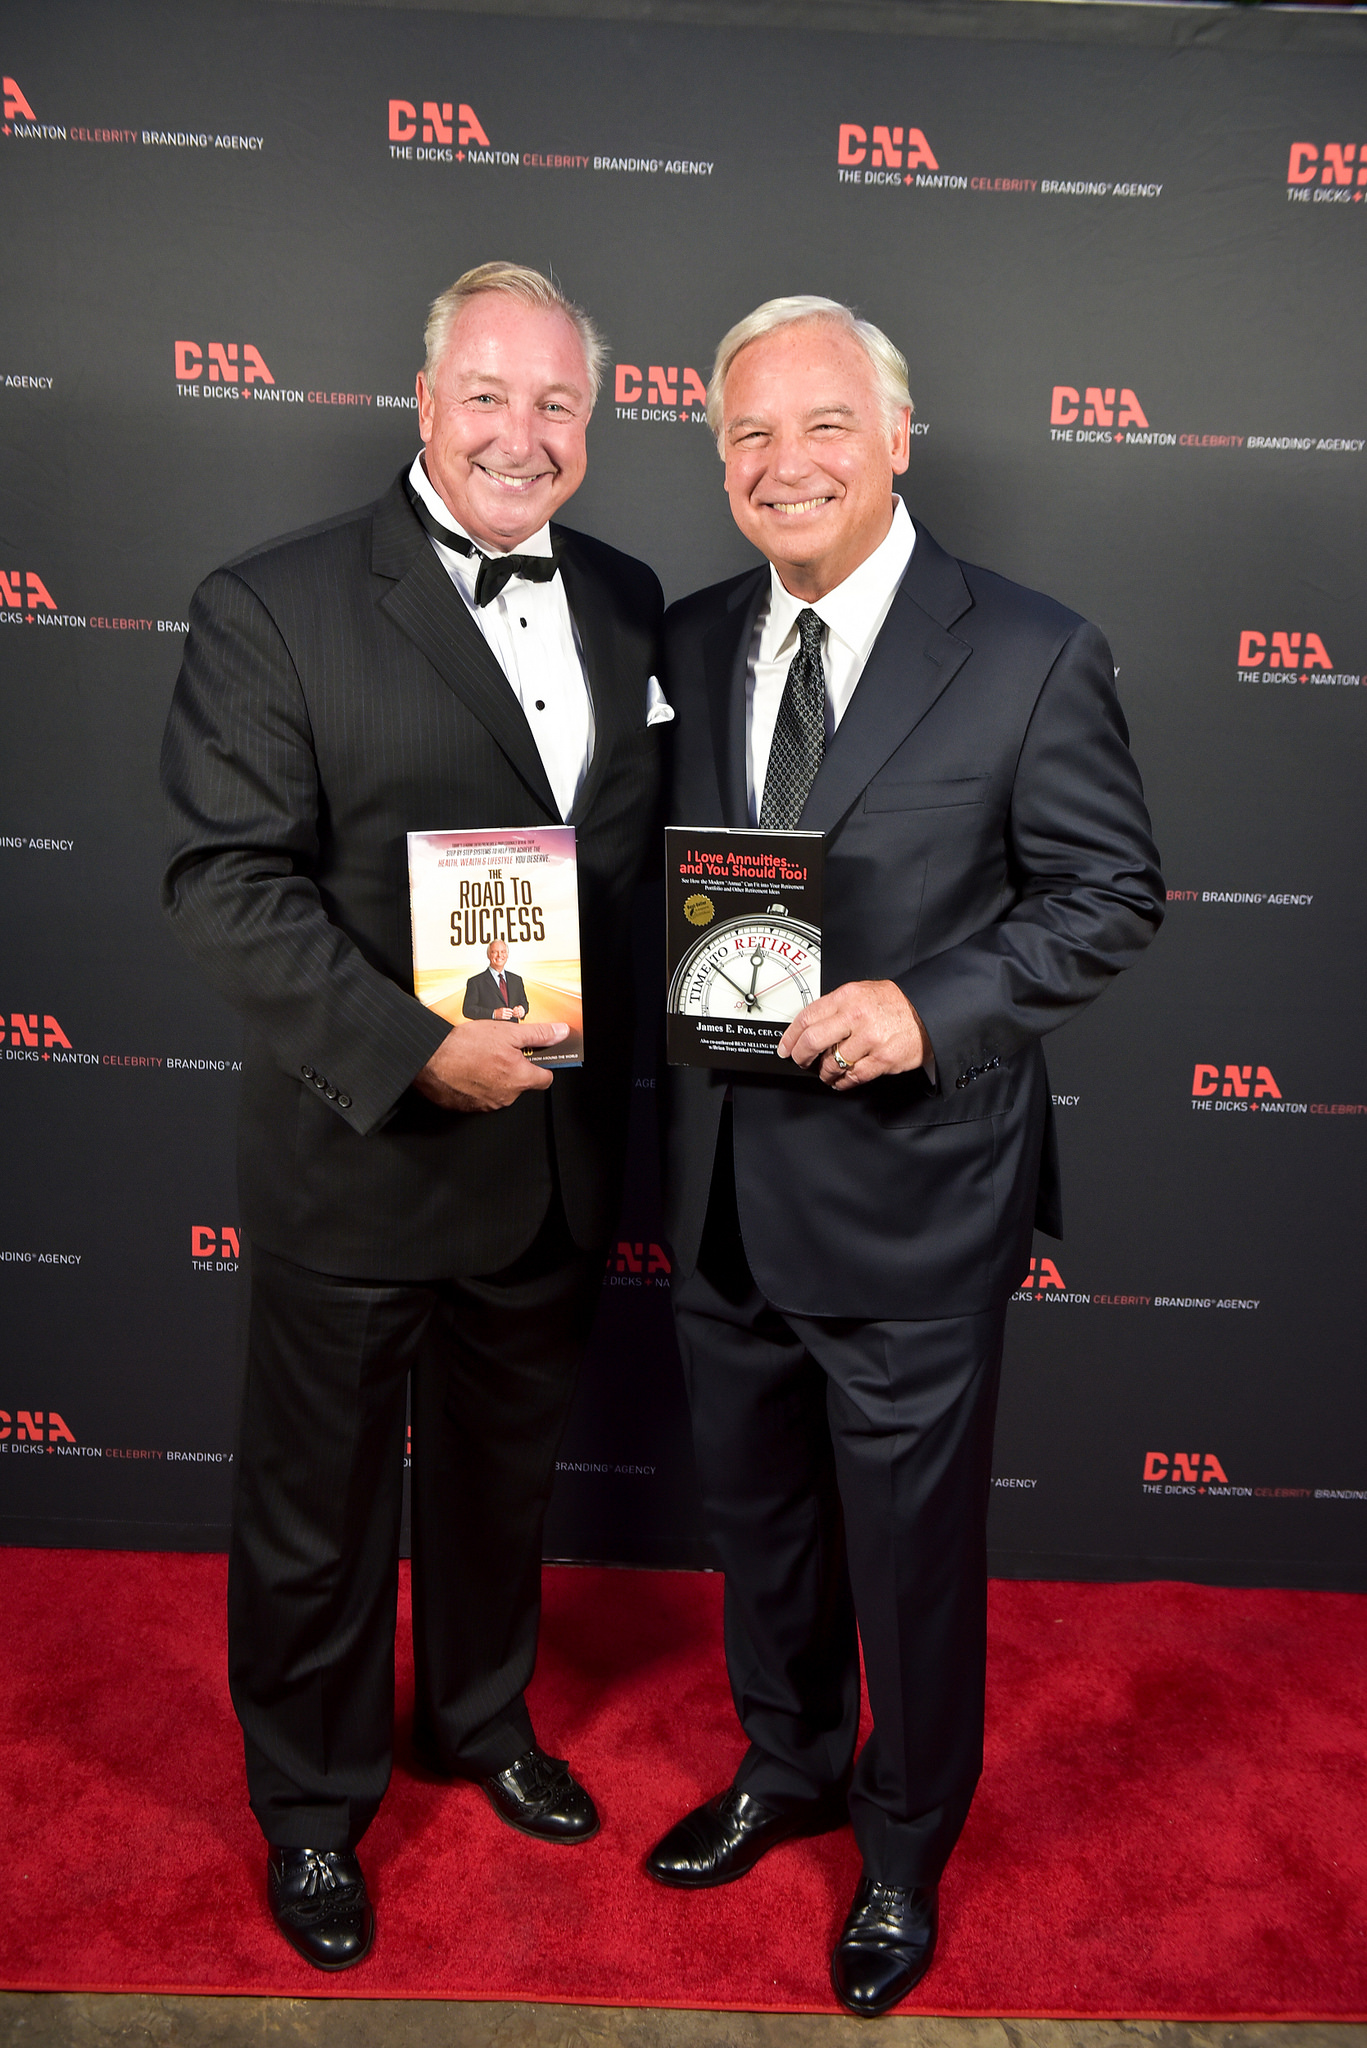 Jim with Jack Canfield